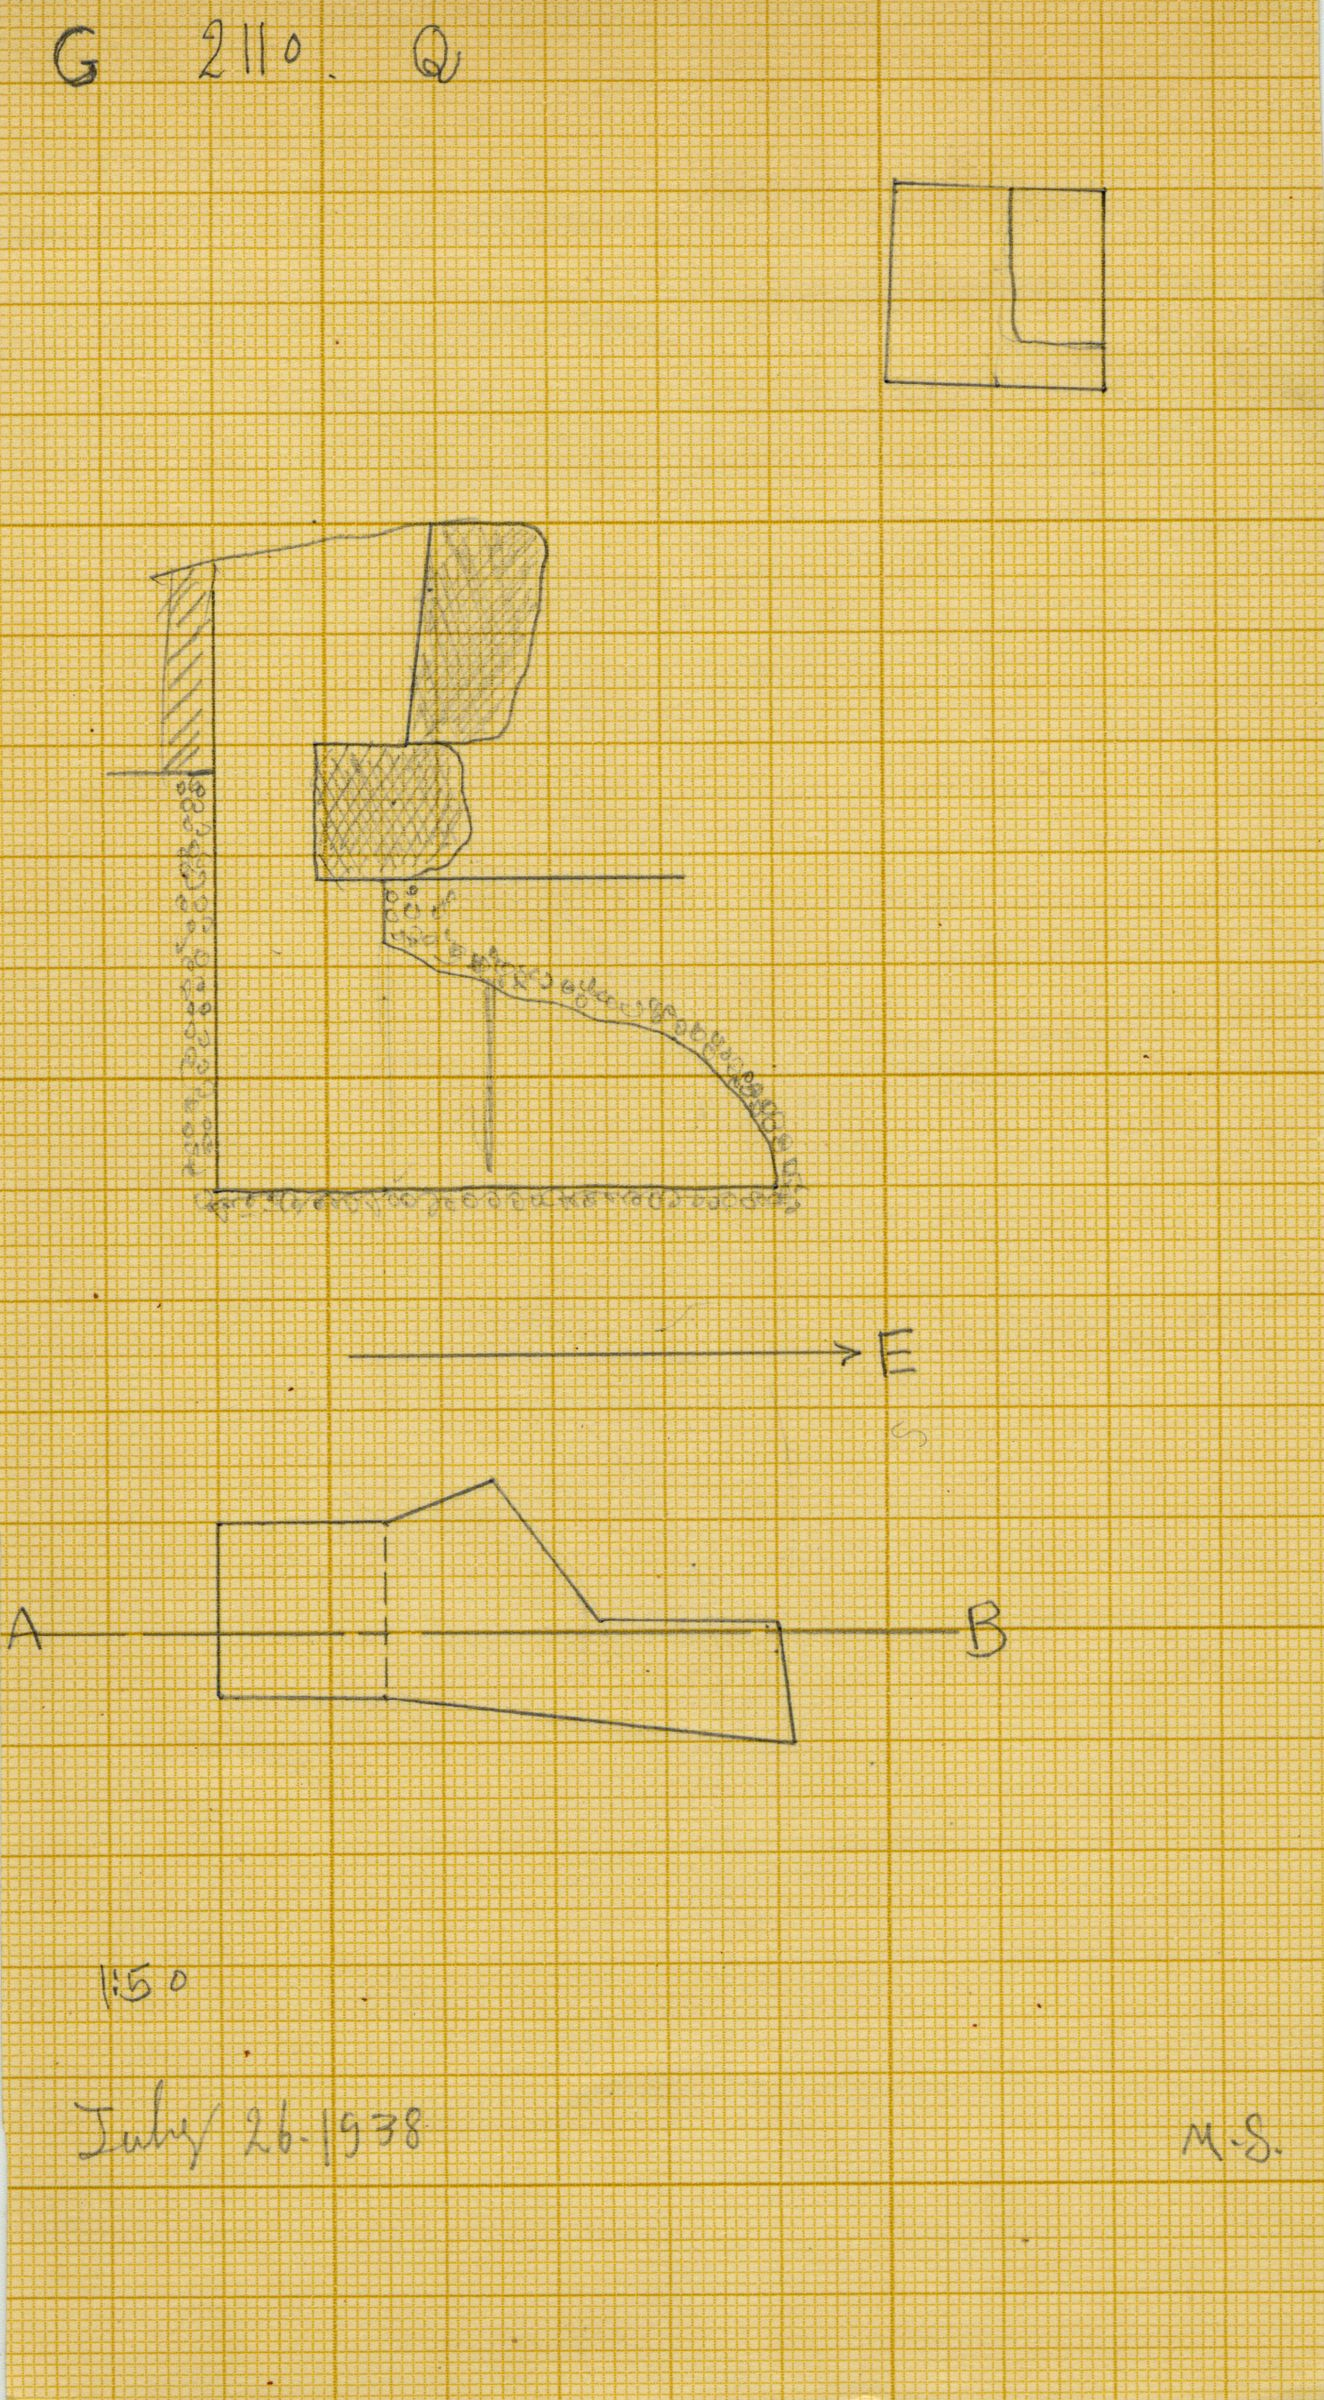 Maps and plans: G 2110, Shaft Q